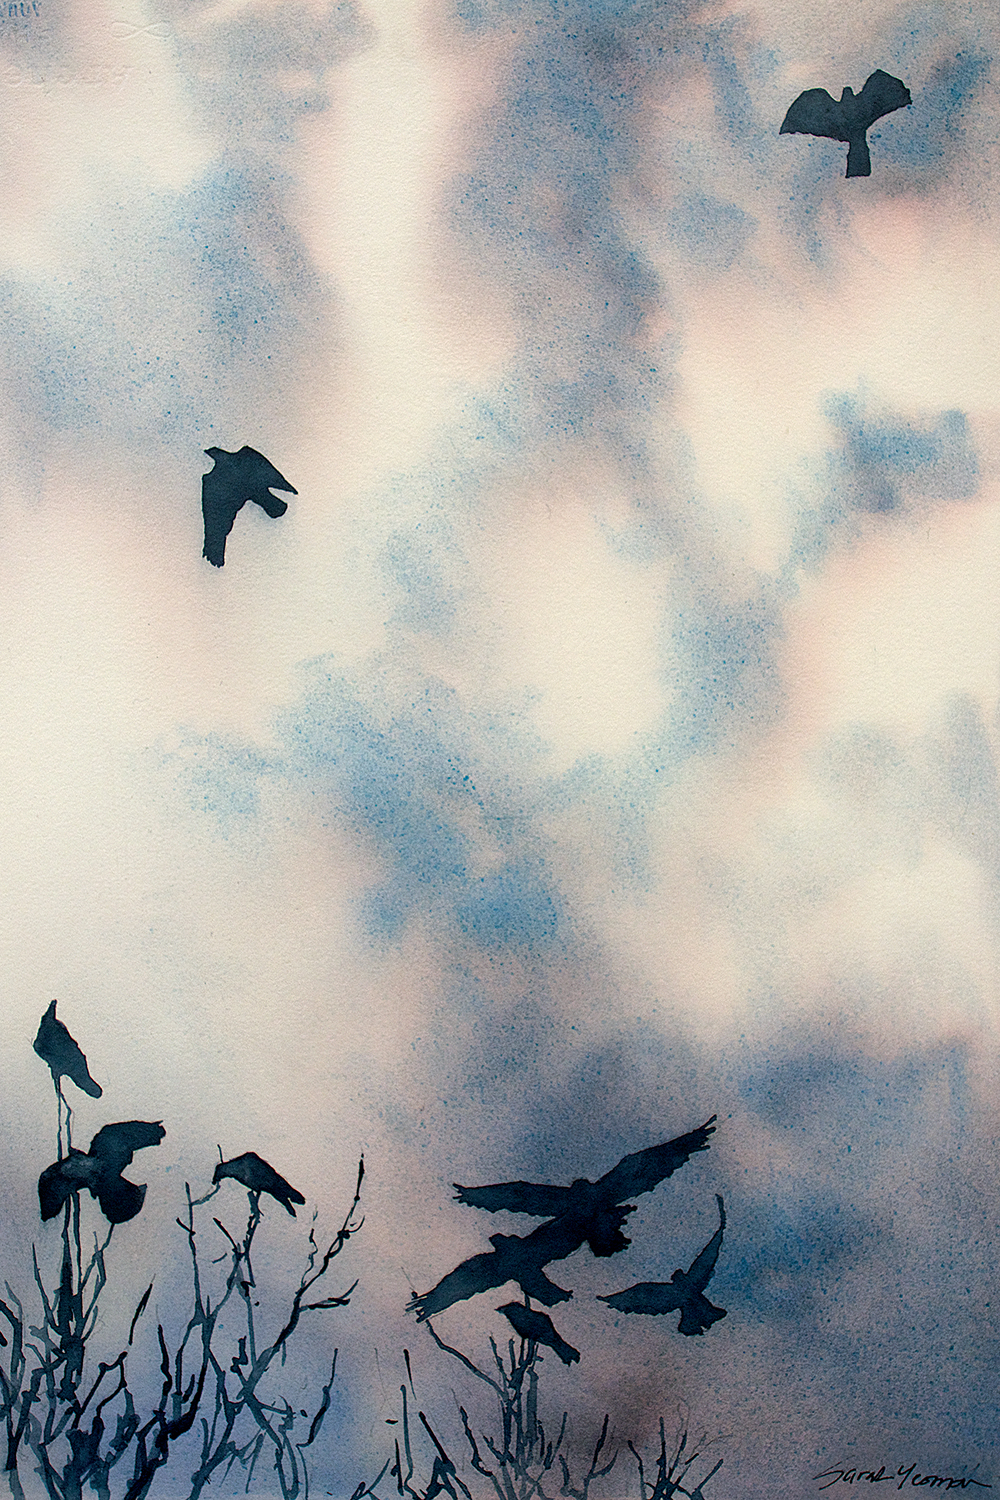 Crows flying in clouds over tops of dead tree branches